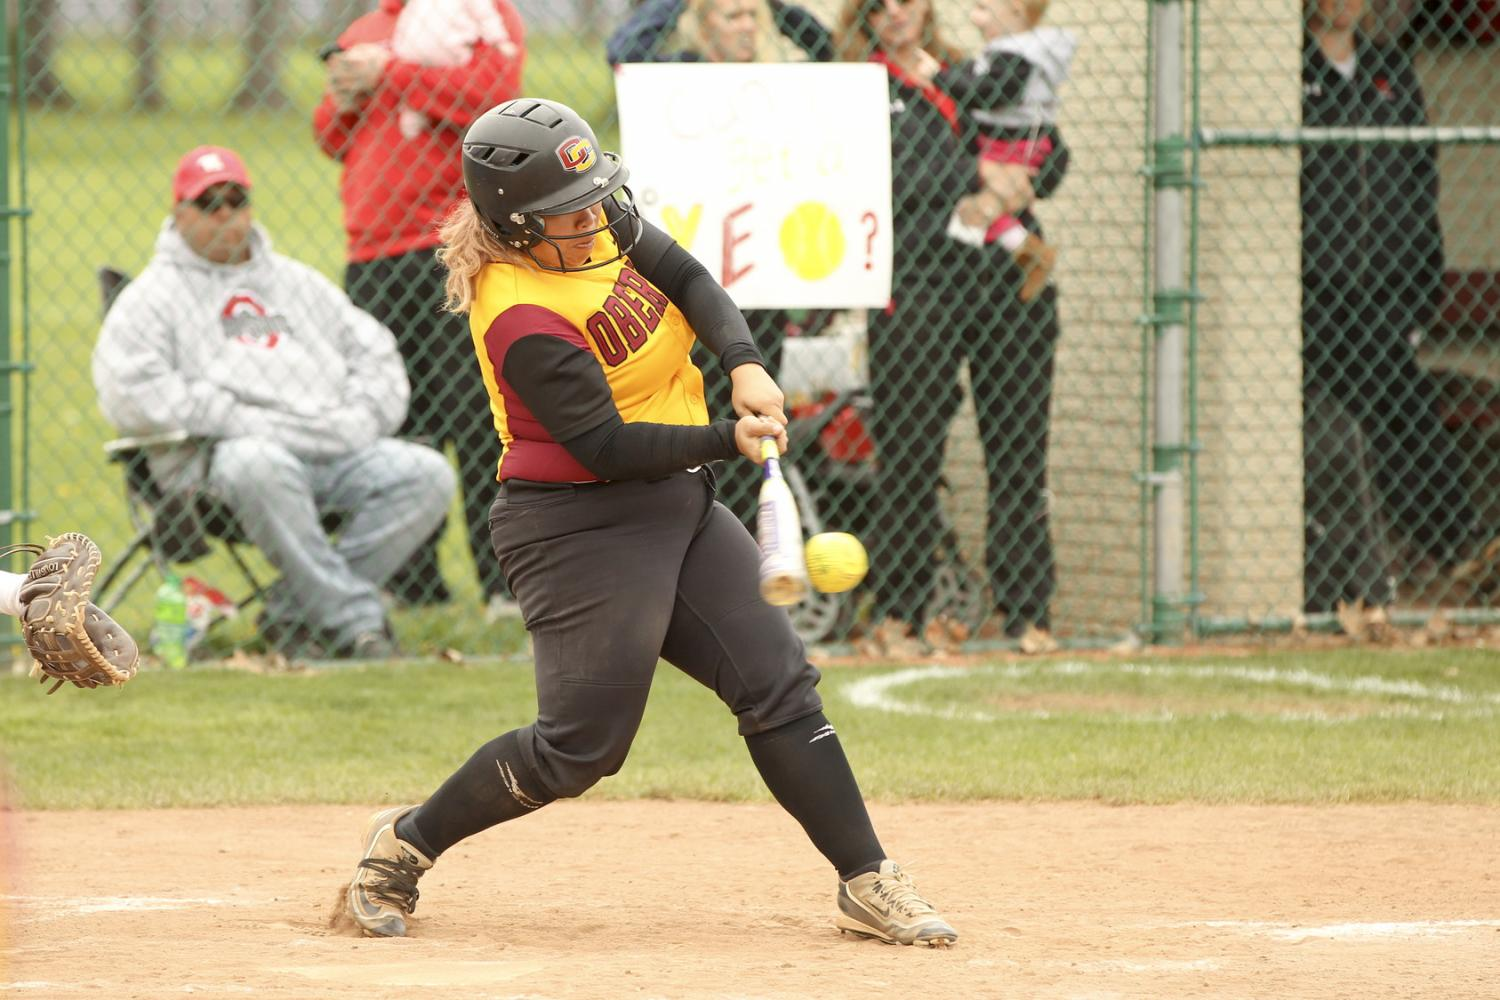 Senior captain Grace Evans connects with a pitch against Wittenberg University on Senior Day last Saturday. The Yeowomen finished their season 12–28 overall and 2–14 in the NCAC.